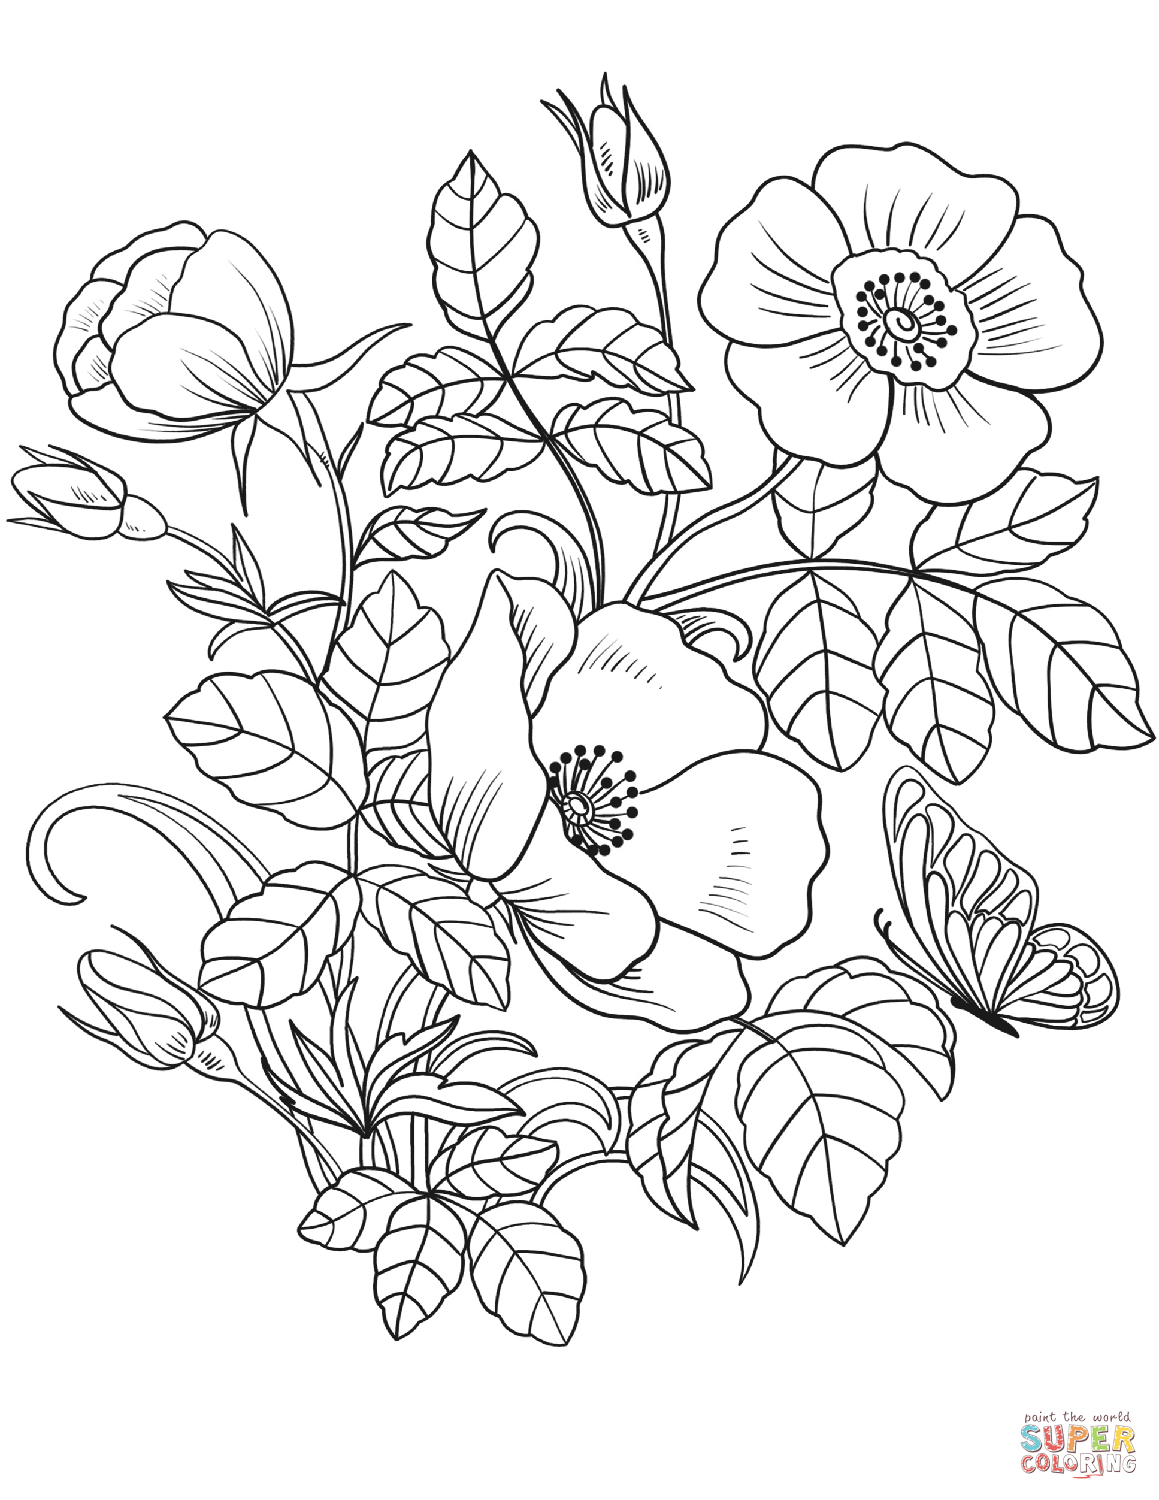 Spring Flowers Coloring Page | Free Printable Coloring Pages - Free Printable Spring Pictures To Color